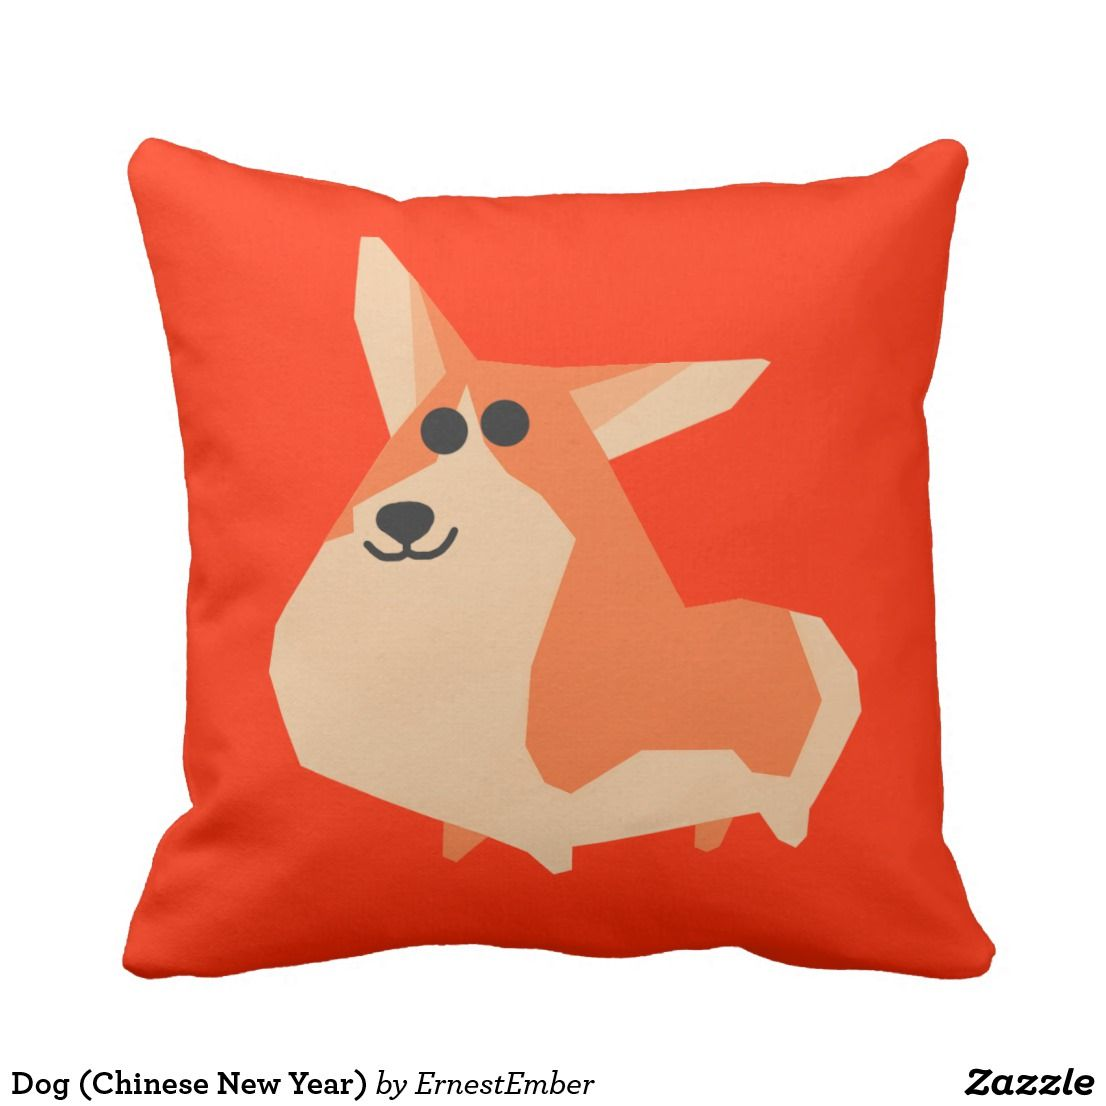 Dog (Chinese New Year) Throw Pillow dog puppy